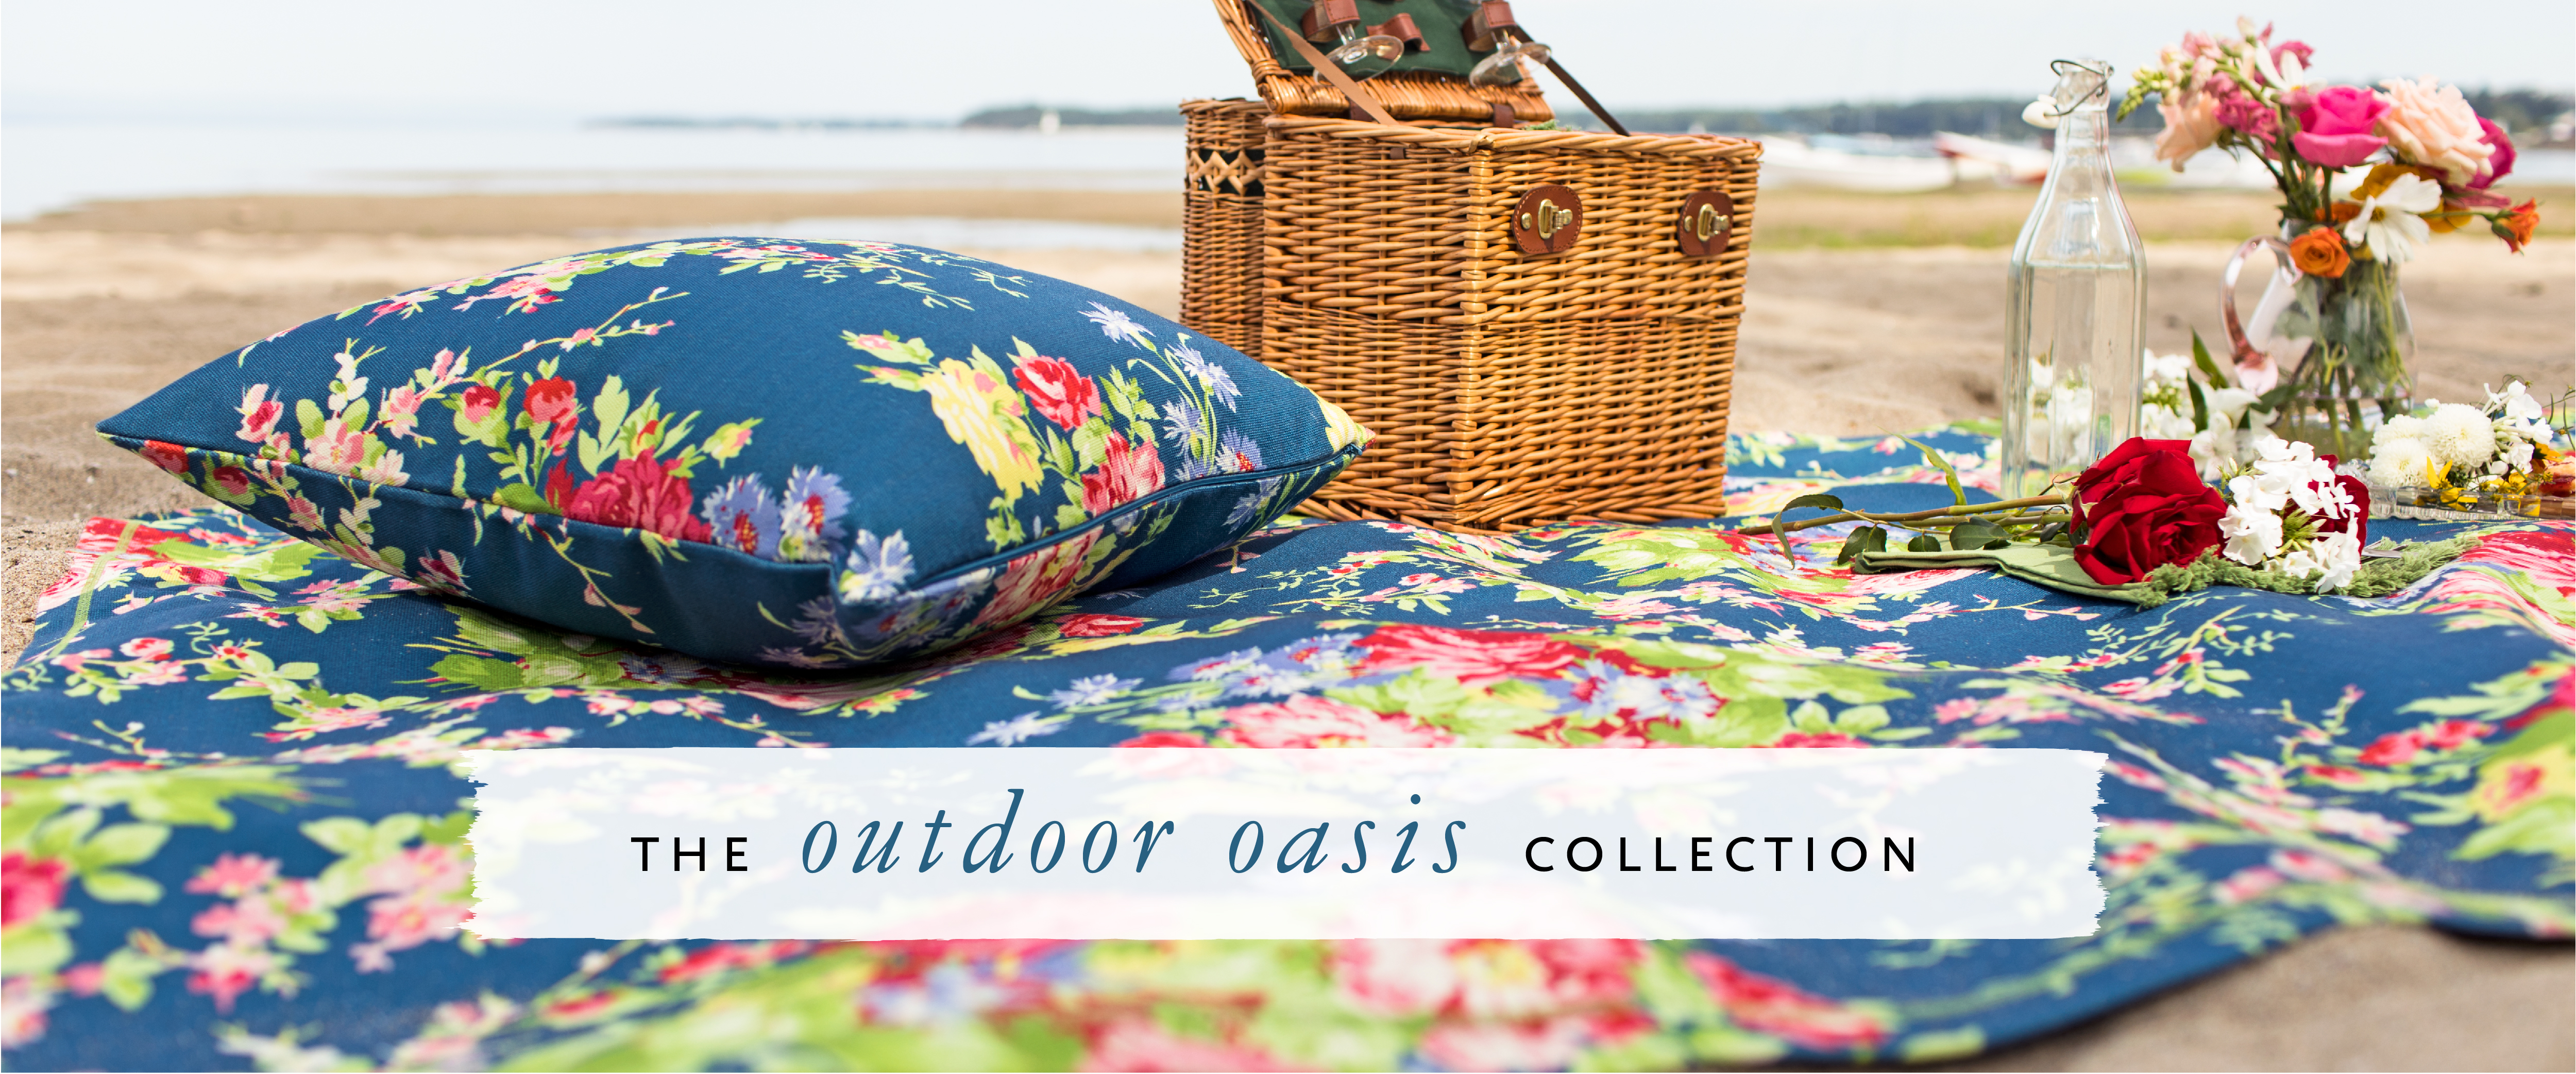 The Outdoor Oasis Collection